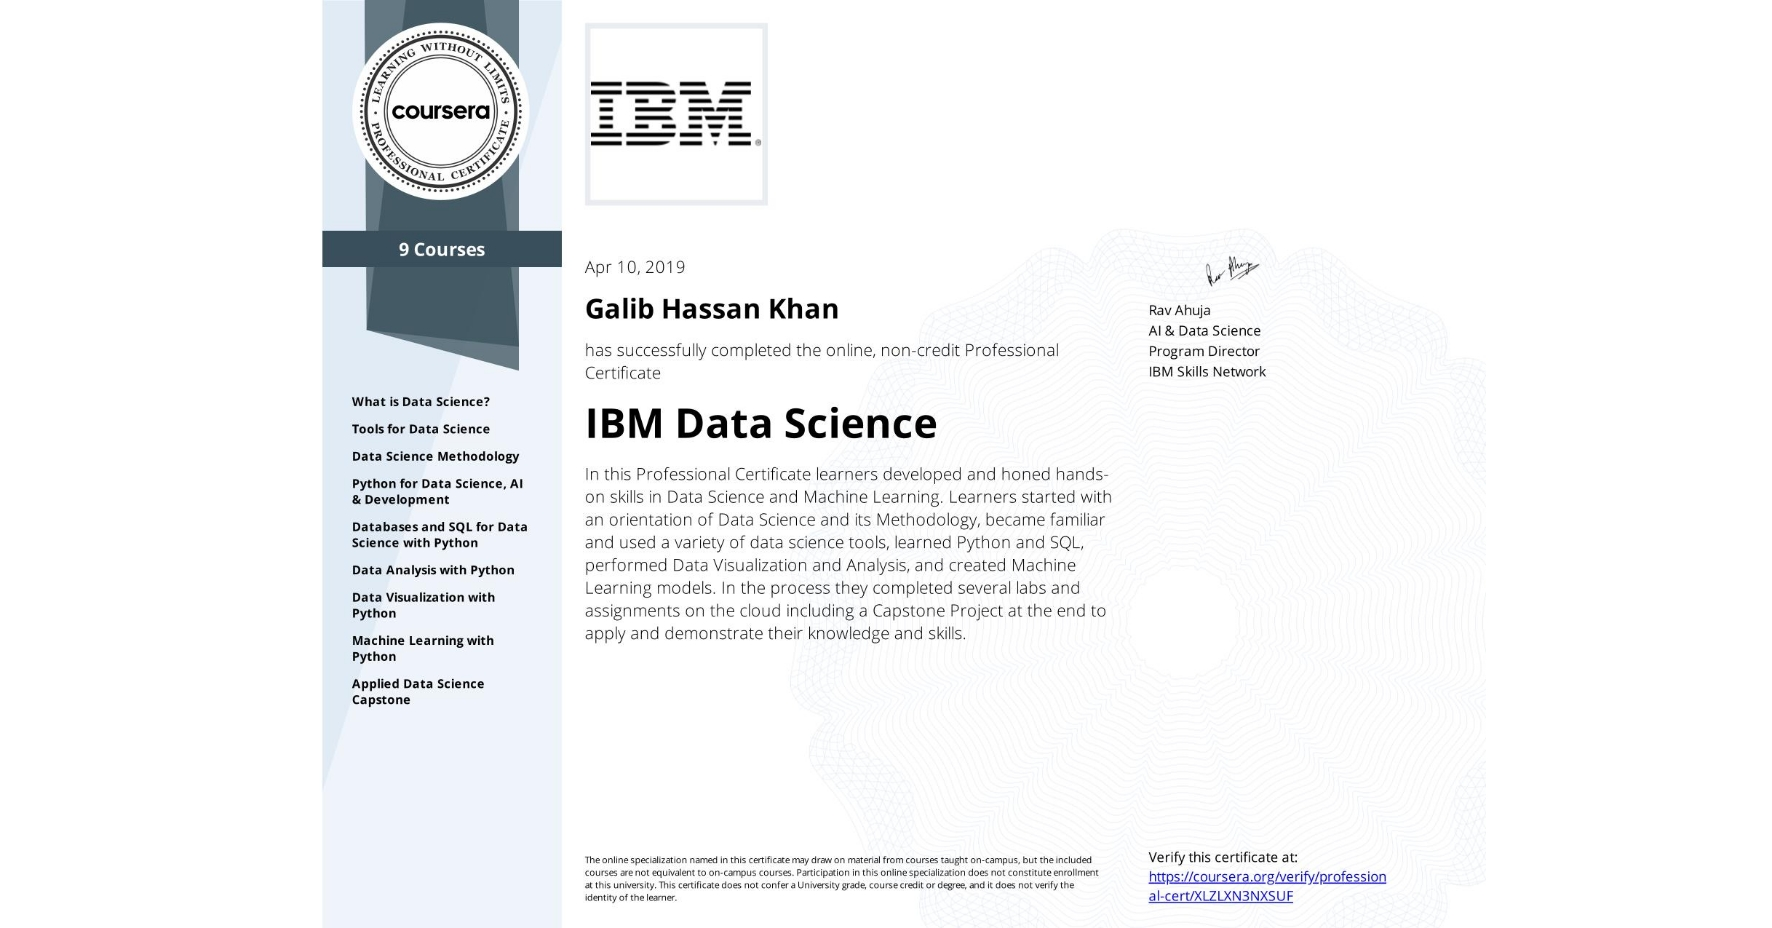 View certificate for Galib Hassan  Khan, IBM Data Science, offered through Coursera. In this Professional Certificate learners developed and honed hands-on skills in Data Science and Machine Learning. Learners started with an orientation of Data Science and its Methodology, became familiar and used a variety of data science tools, learned Python and SQL, performed Data Visualization and Analysis, and created Machine Learning models.  In the process they completed several labs and assignments on the cloud including a Capstone Project at the end to apply and demonstrate their knowledge and skills.